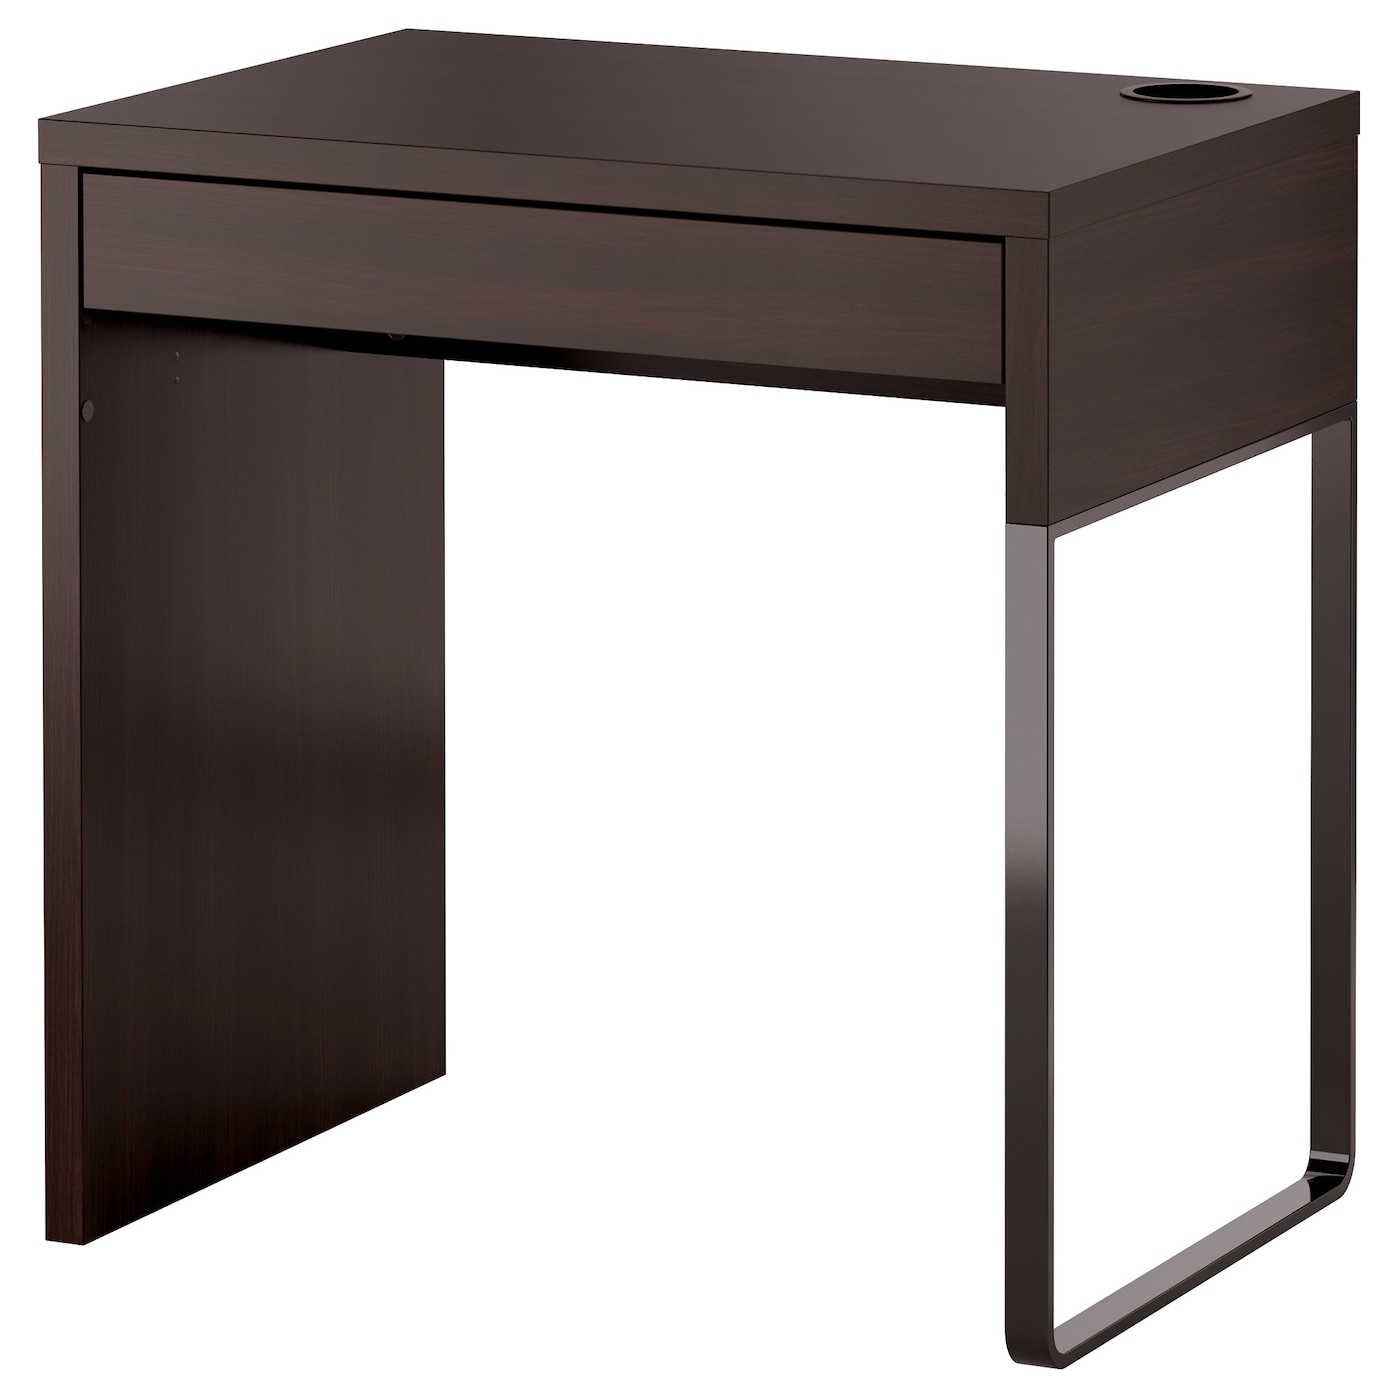 Micke desk black brown 73 x 50 cm ikea for Ikea drawing desk